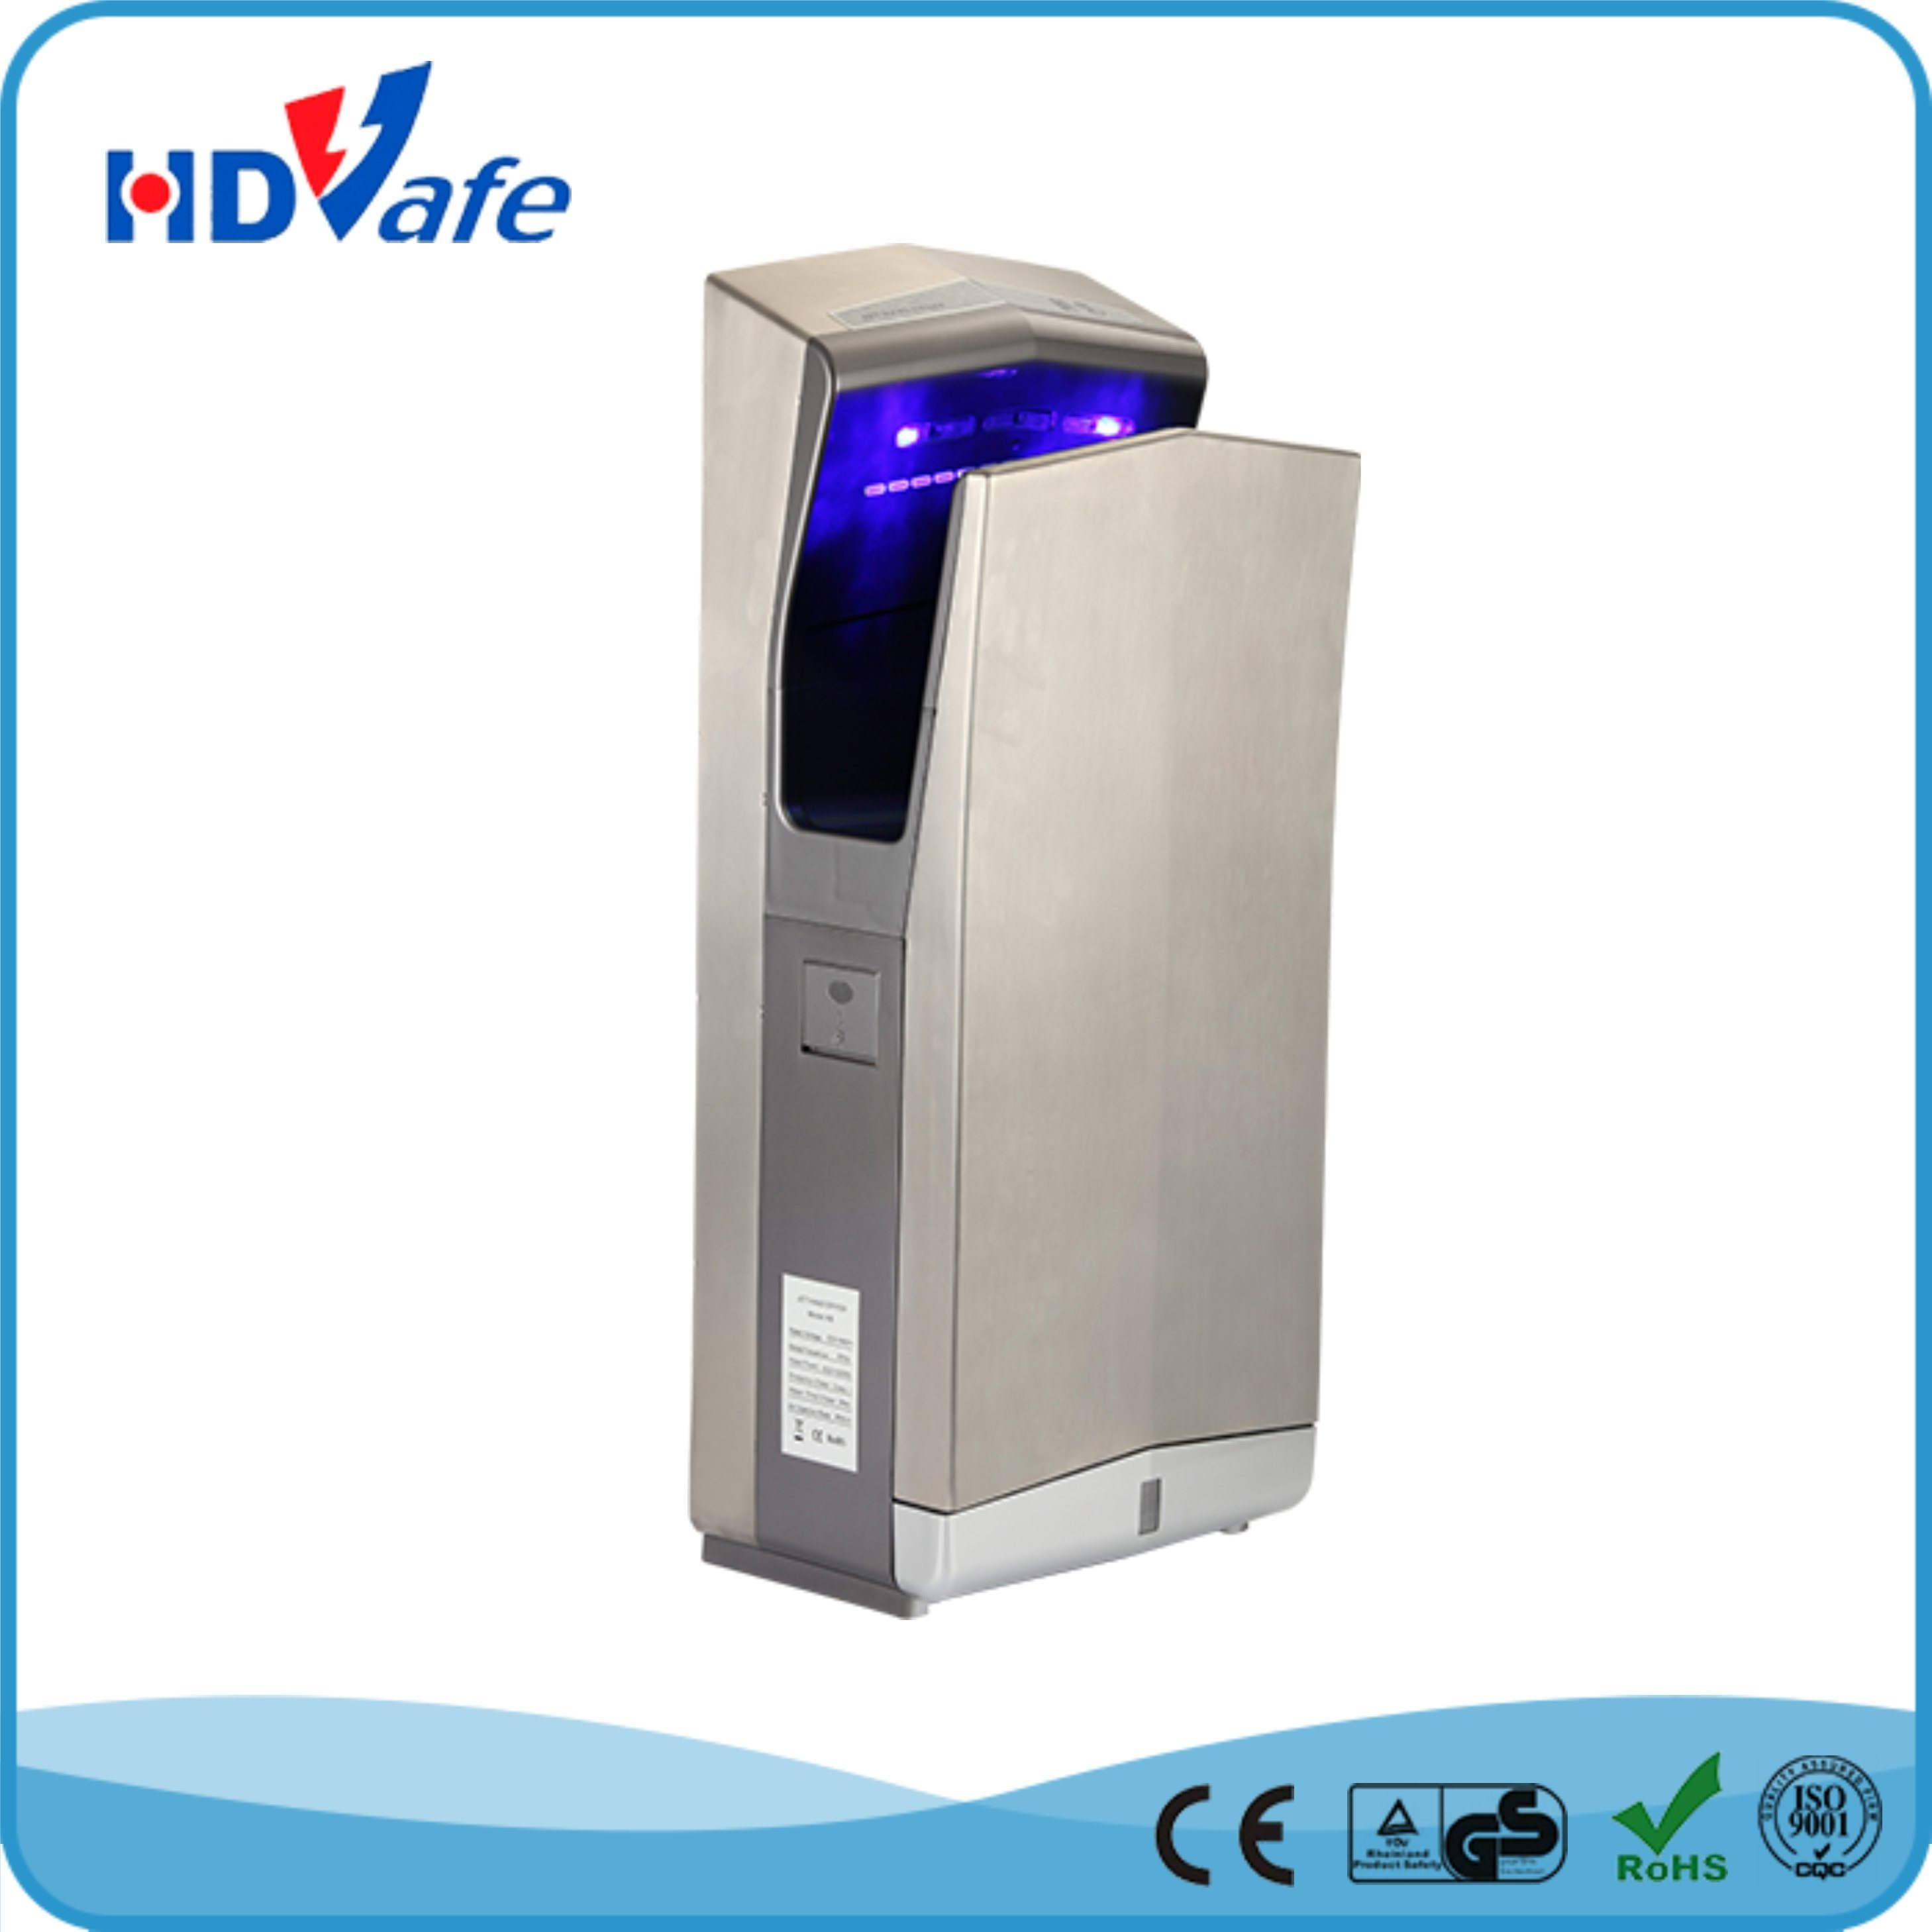 GS Manufacture High Speed Automatic Stainless Steel Air Jet Hand Dryer for Hotel Toilet Drier